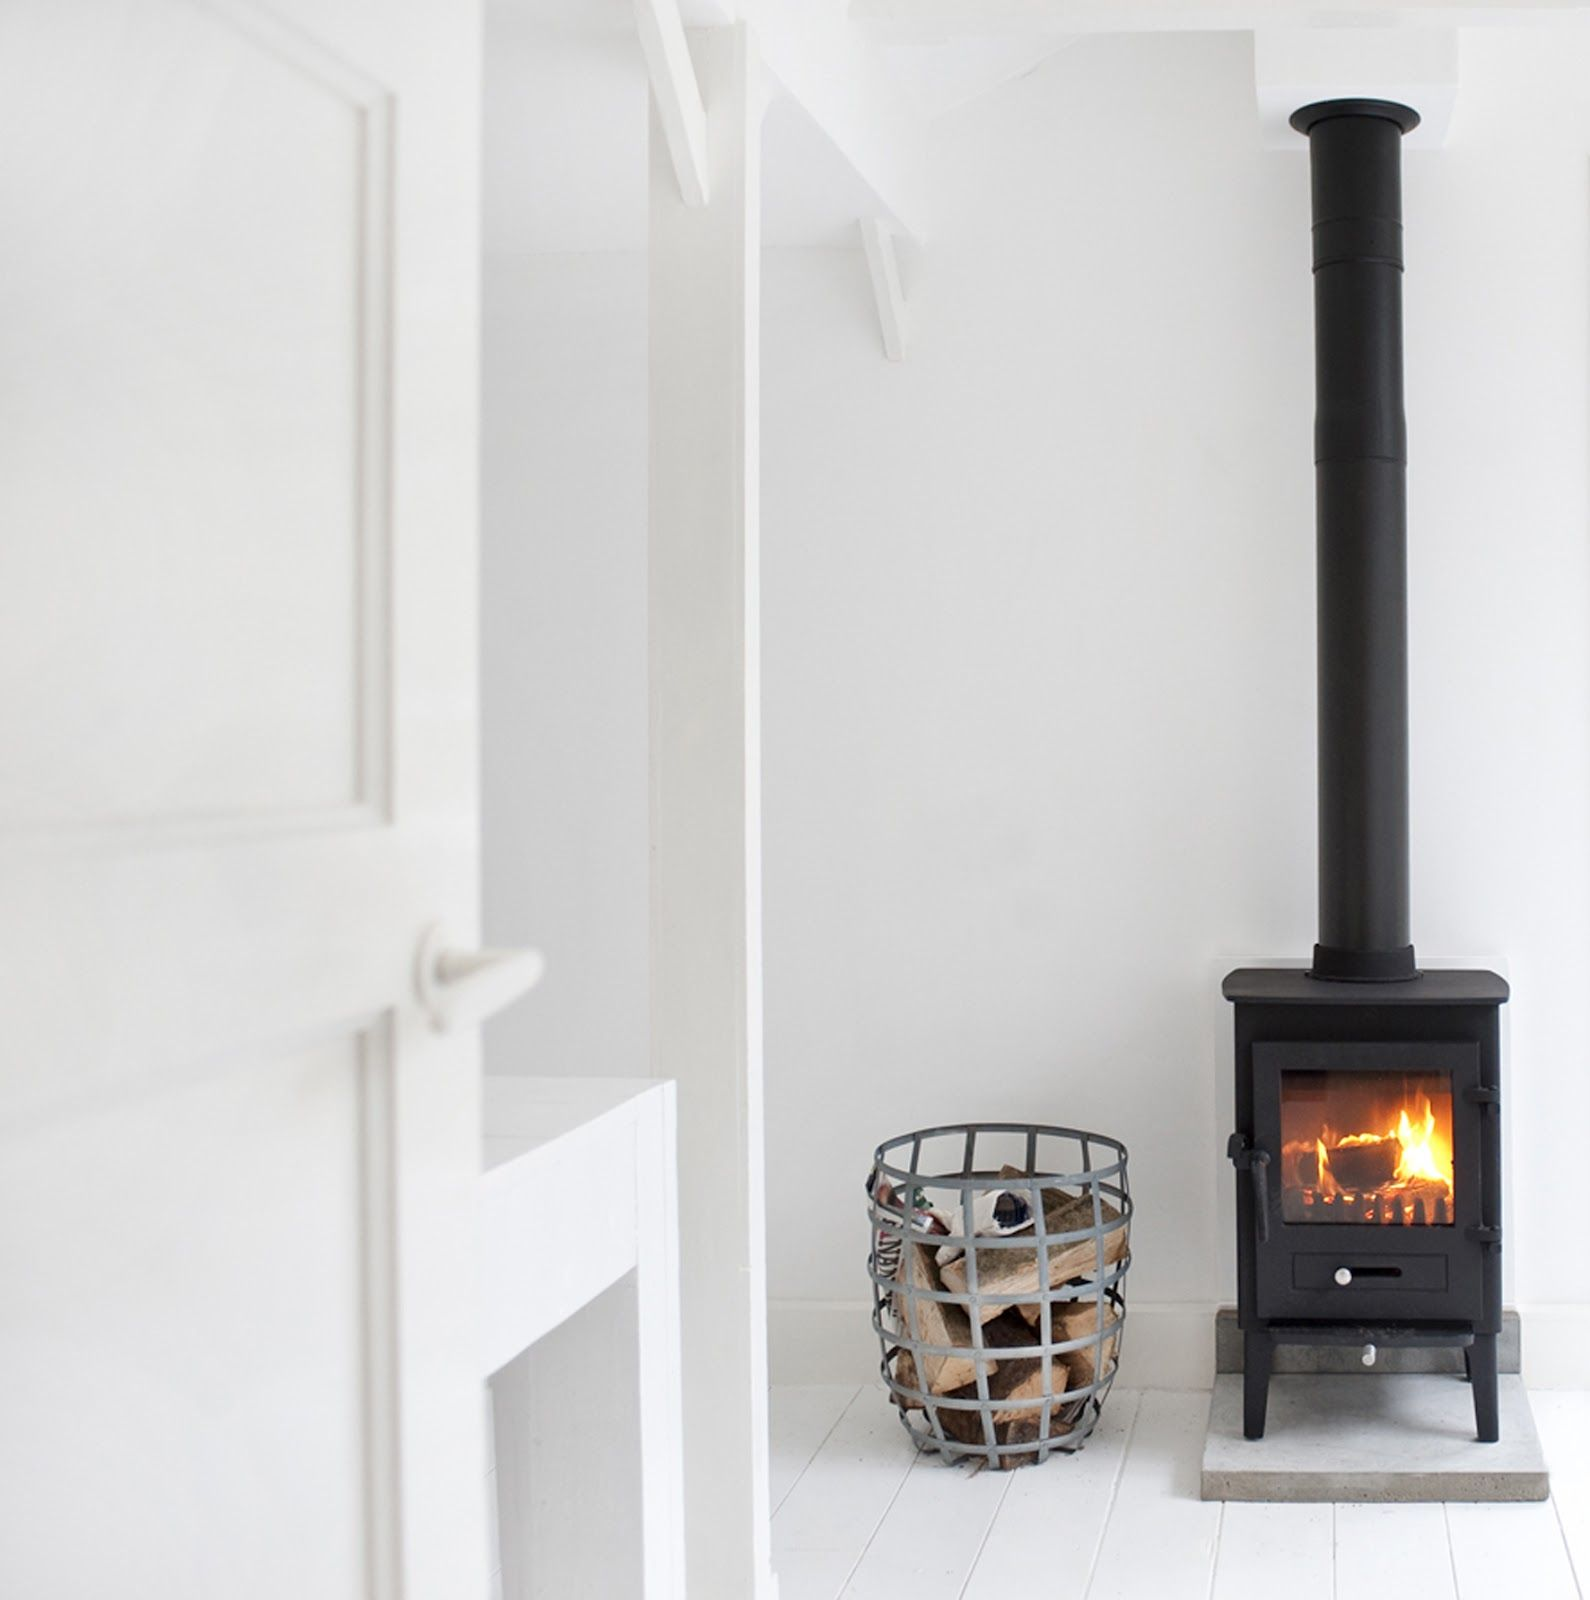 Le Petit Bird Told Me Home Fireplace Home Living Room Home